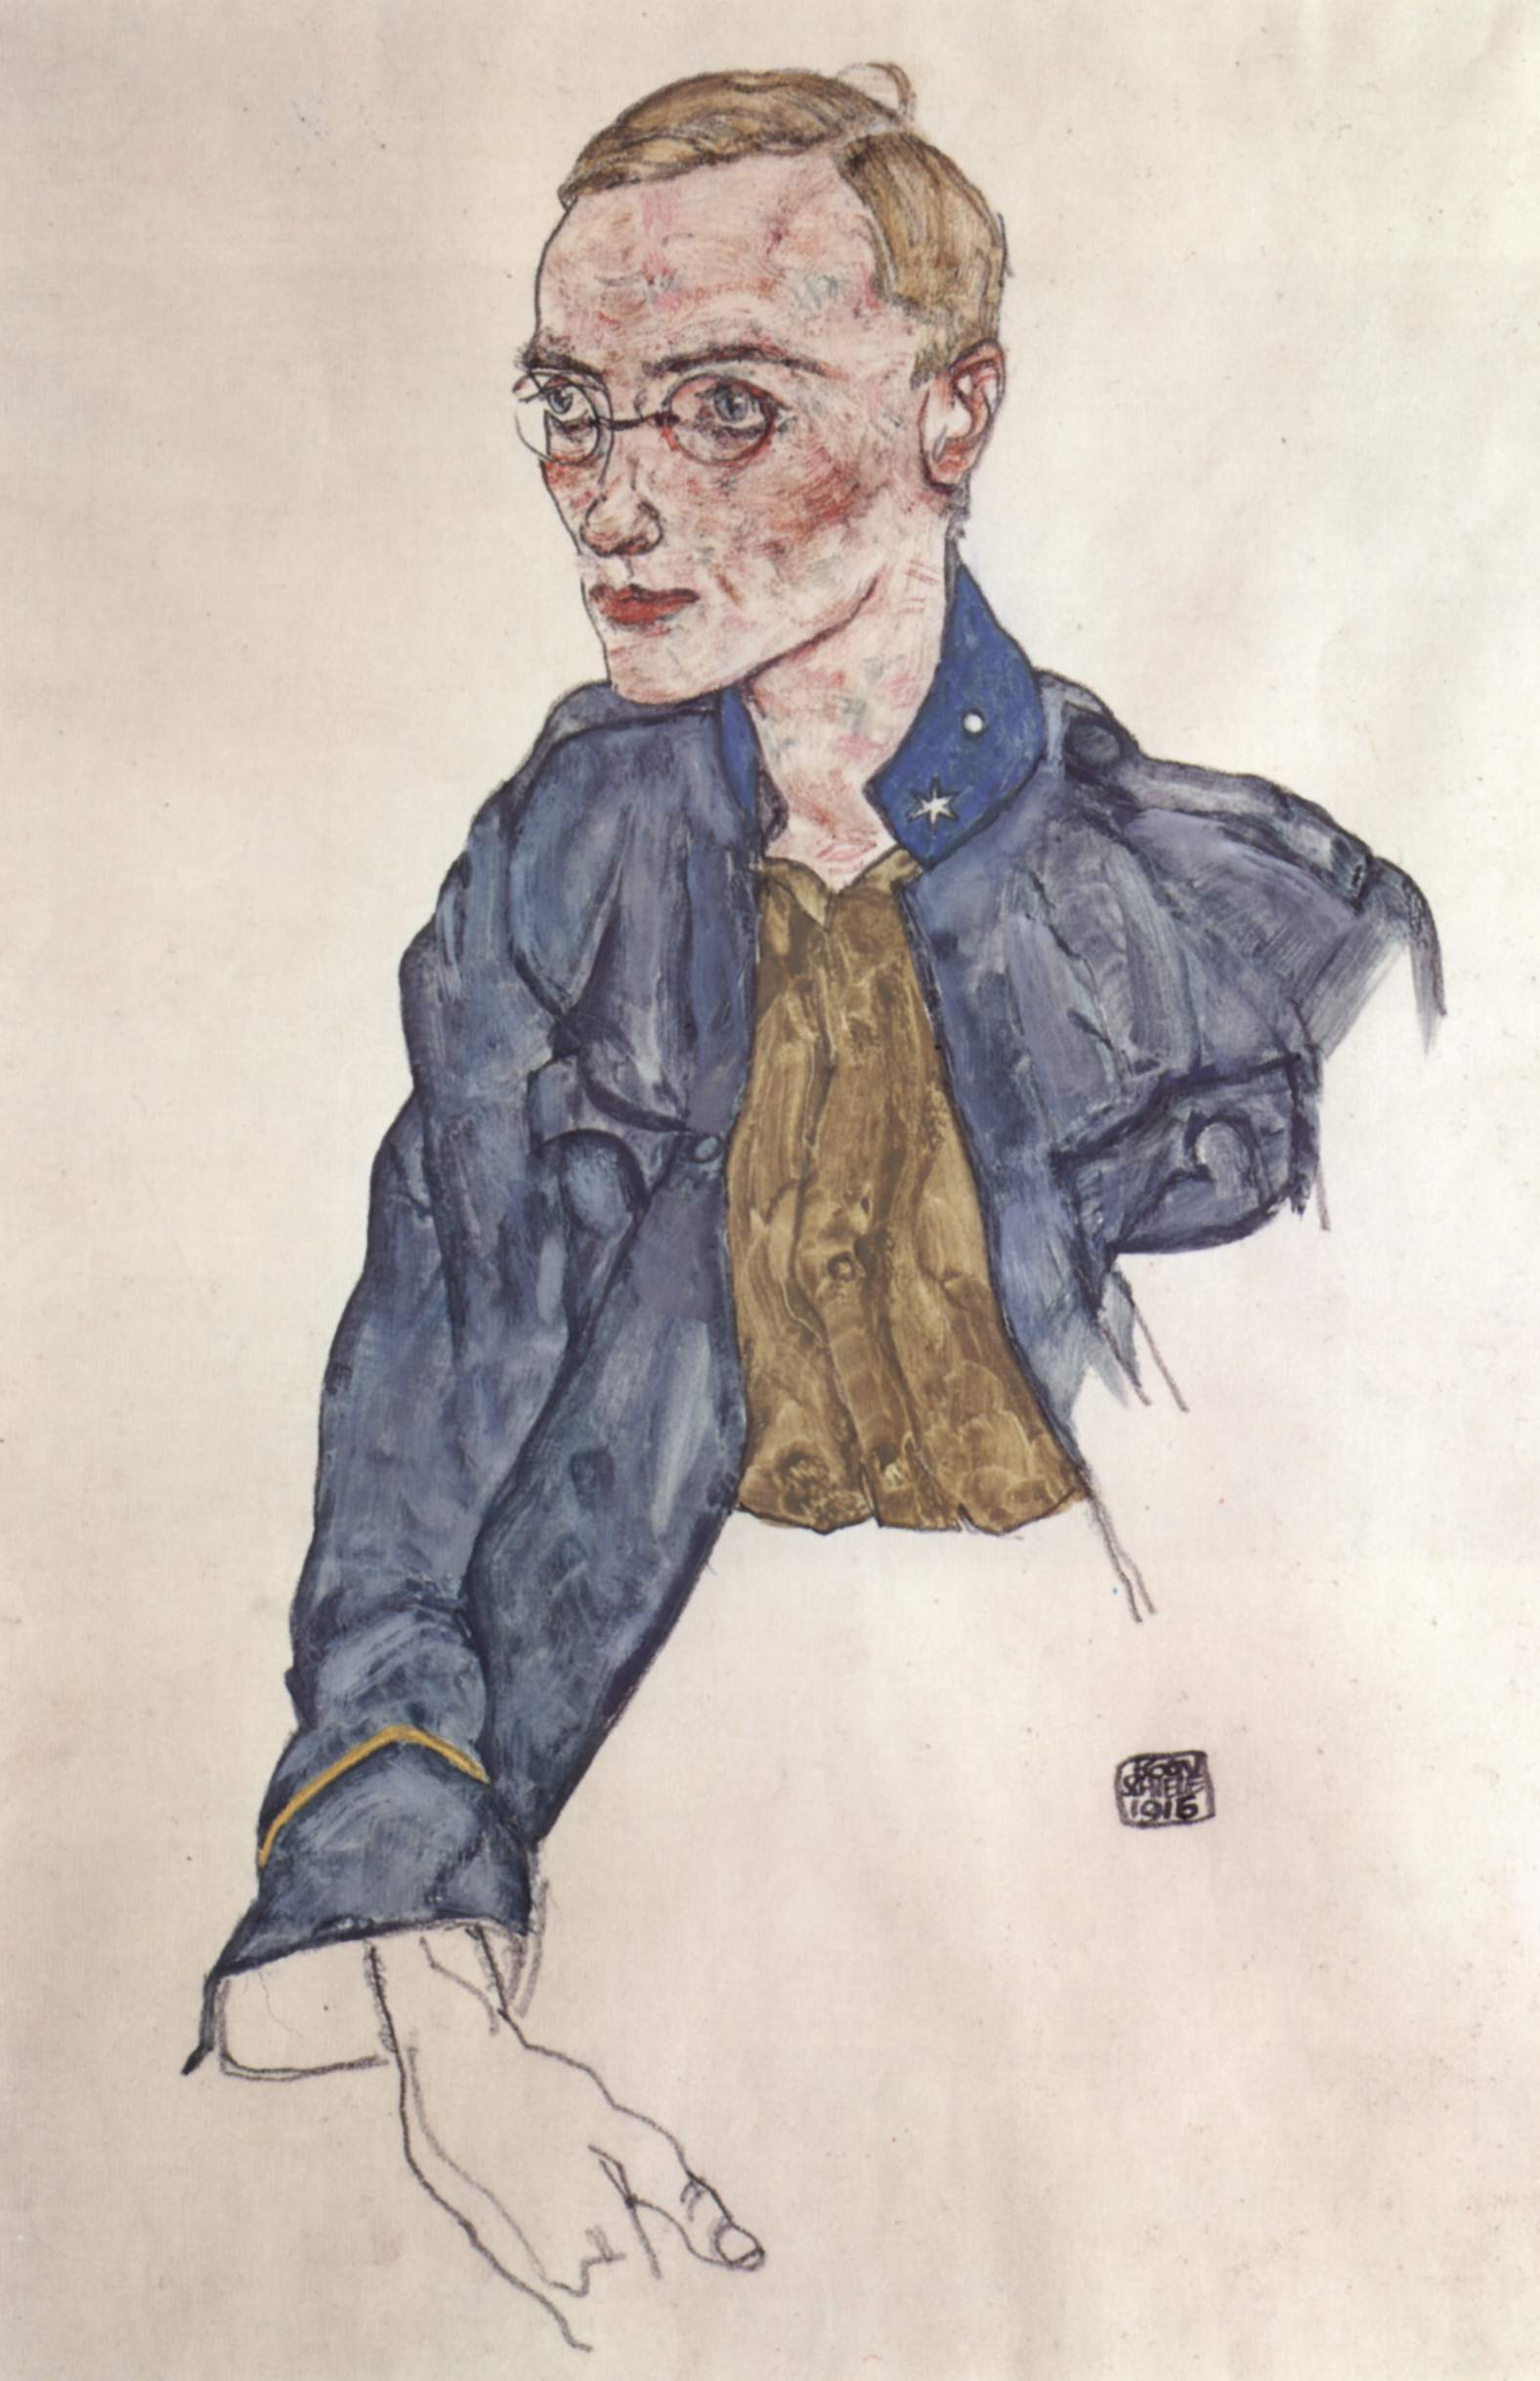 Egon Schiele - Artist Biography with Portfolio of Prints, Posters and Paintings